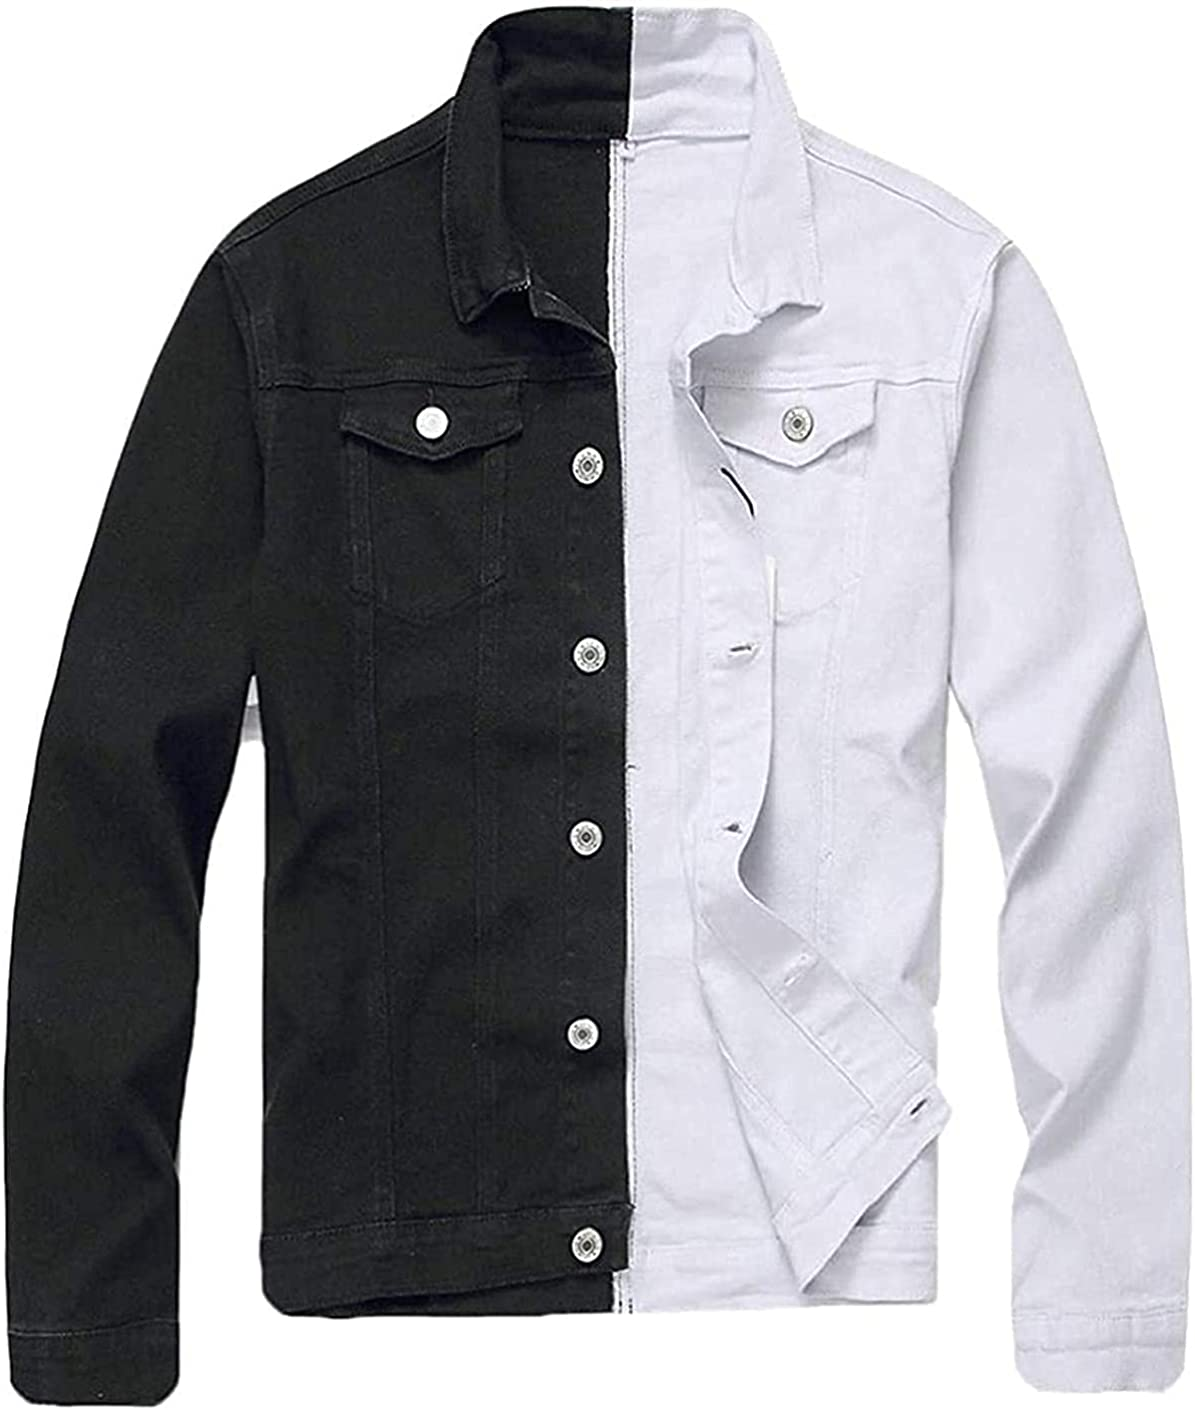 FHdbing Max 81% OFF Mens Cotton Color Block Mail order Stretchy Denim Sleeve Jacke Long